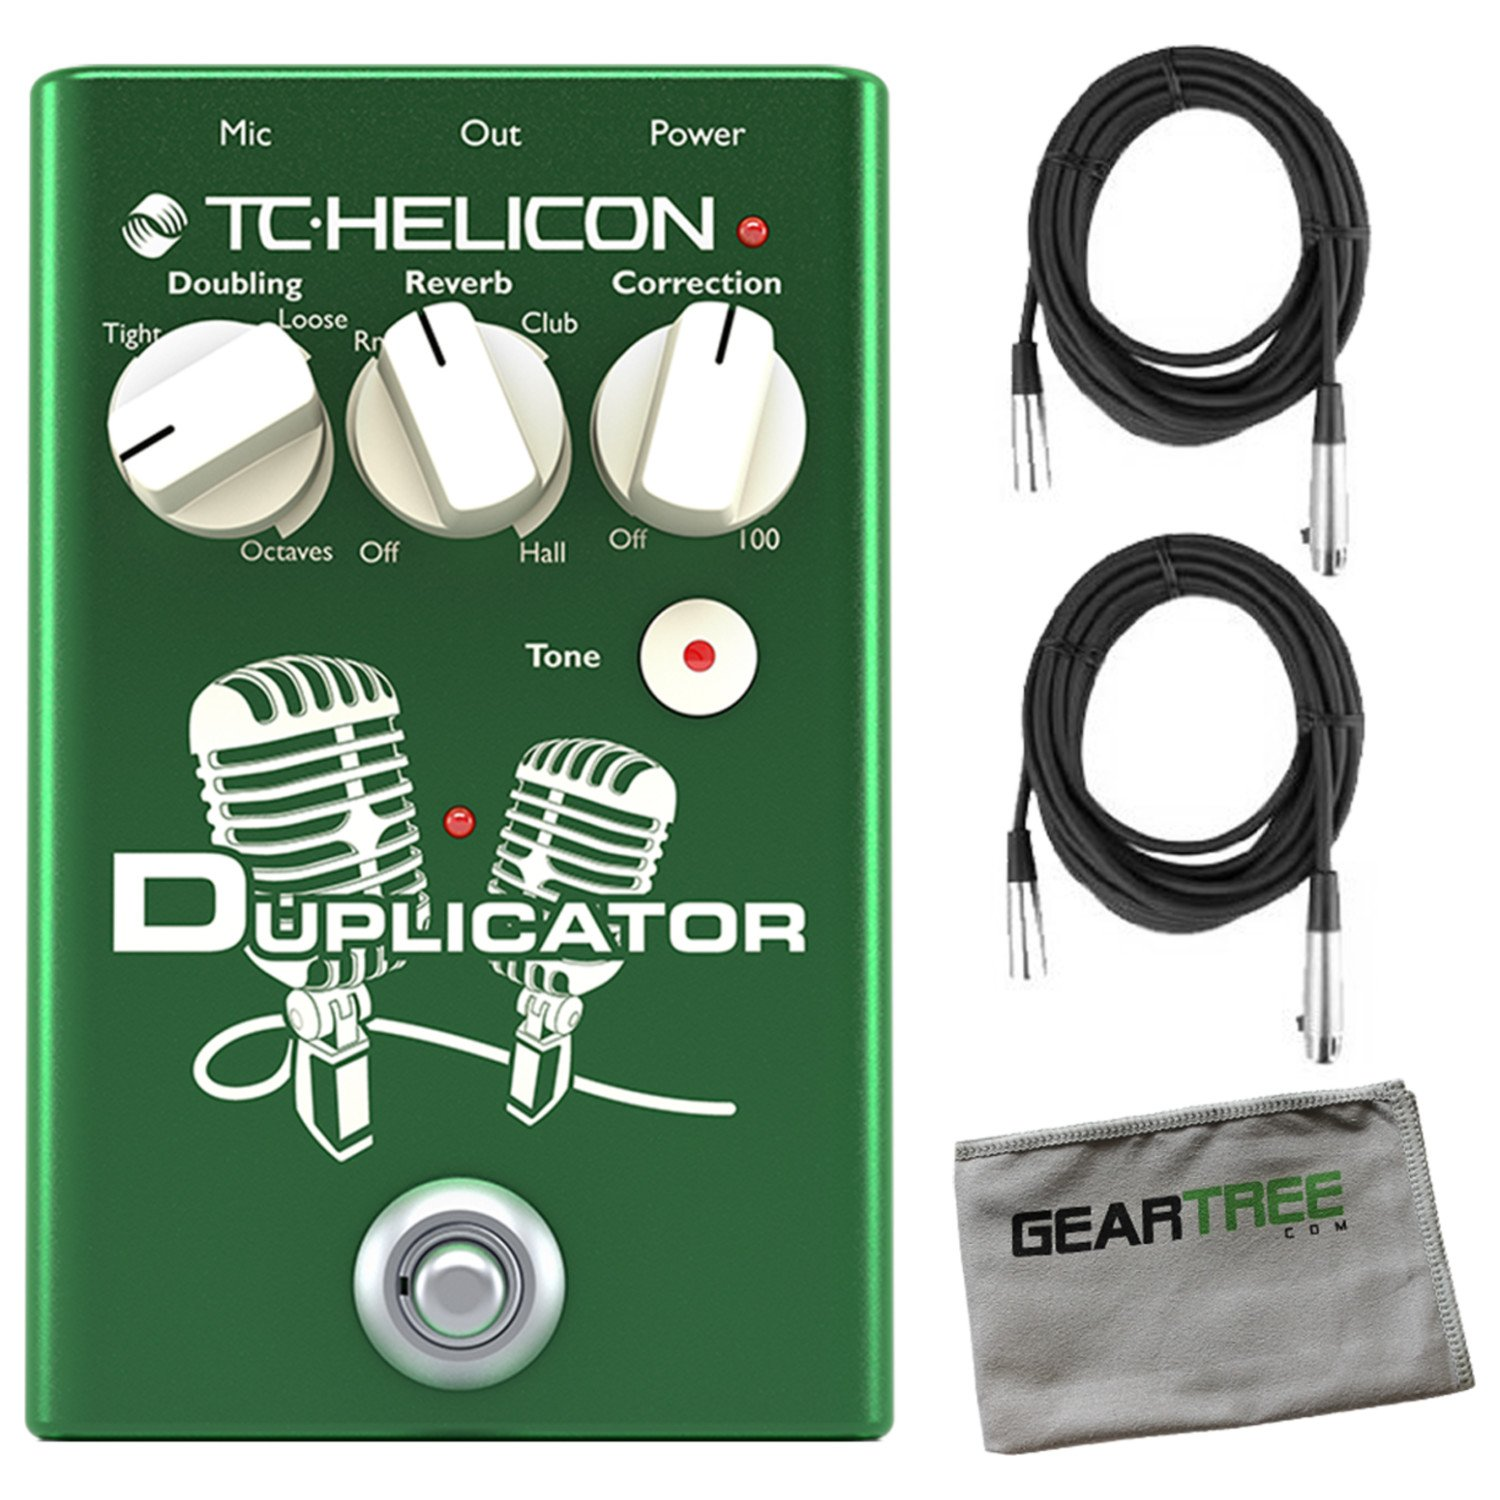 TC Helicon 996372001 TC Helicon DUPLICATOR Vocal Effects Pedal with XLR Cables and Zorro Sounds Cloth